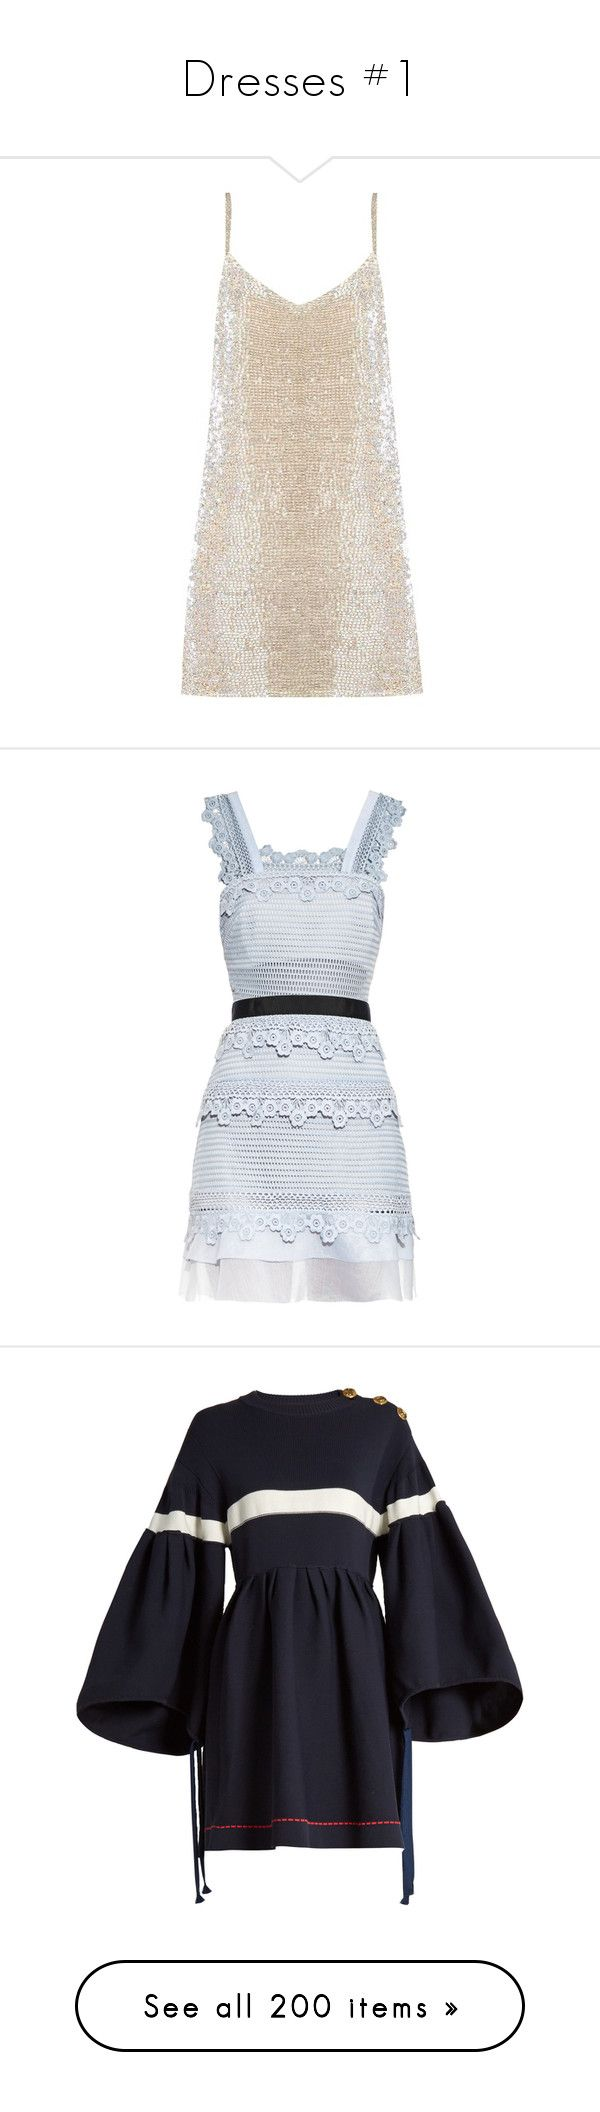 """""""Dresses #1"""" by lastfatima ❤ liked on Polyvore featuring dresses, white, white evening dresses, beaded cocktail dresses, holiday cocktail dresses, holiday dresses, evening cocktail dresses, vestidos, short dresses and light blue"""